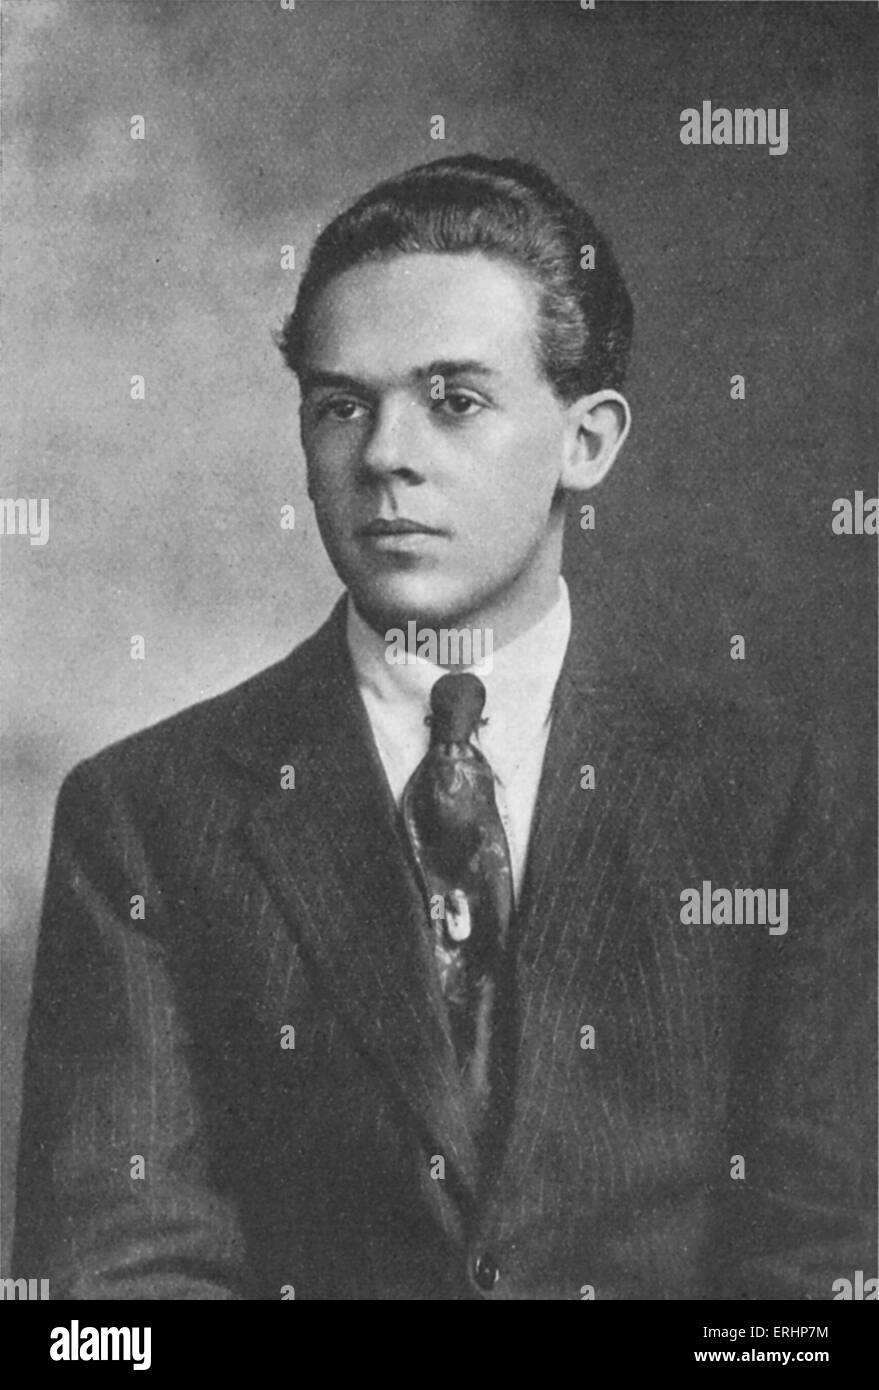 John Hancock - British artist and  poet, (1896 - 1918) drowned himself. - Stock Image